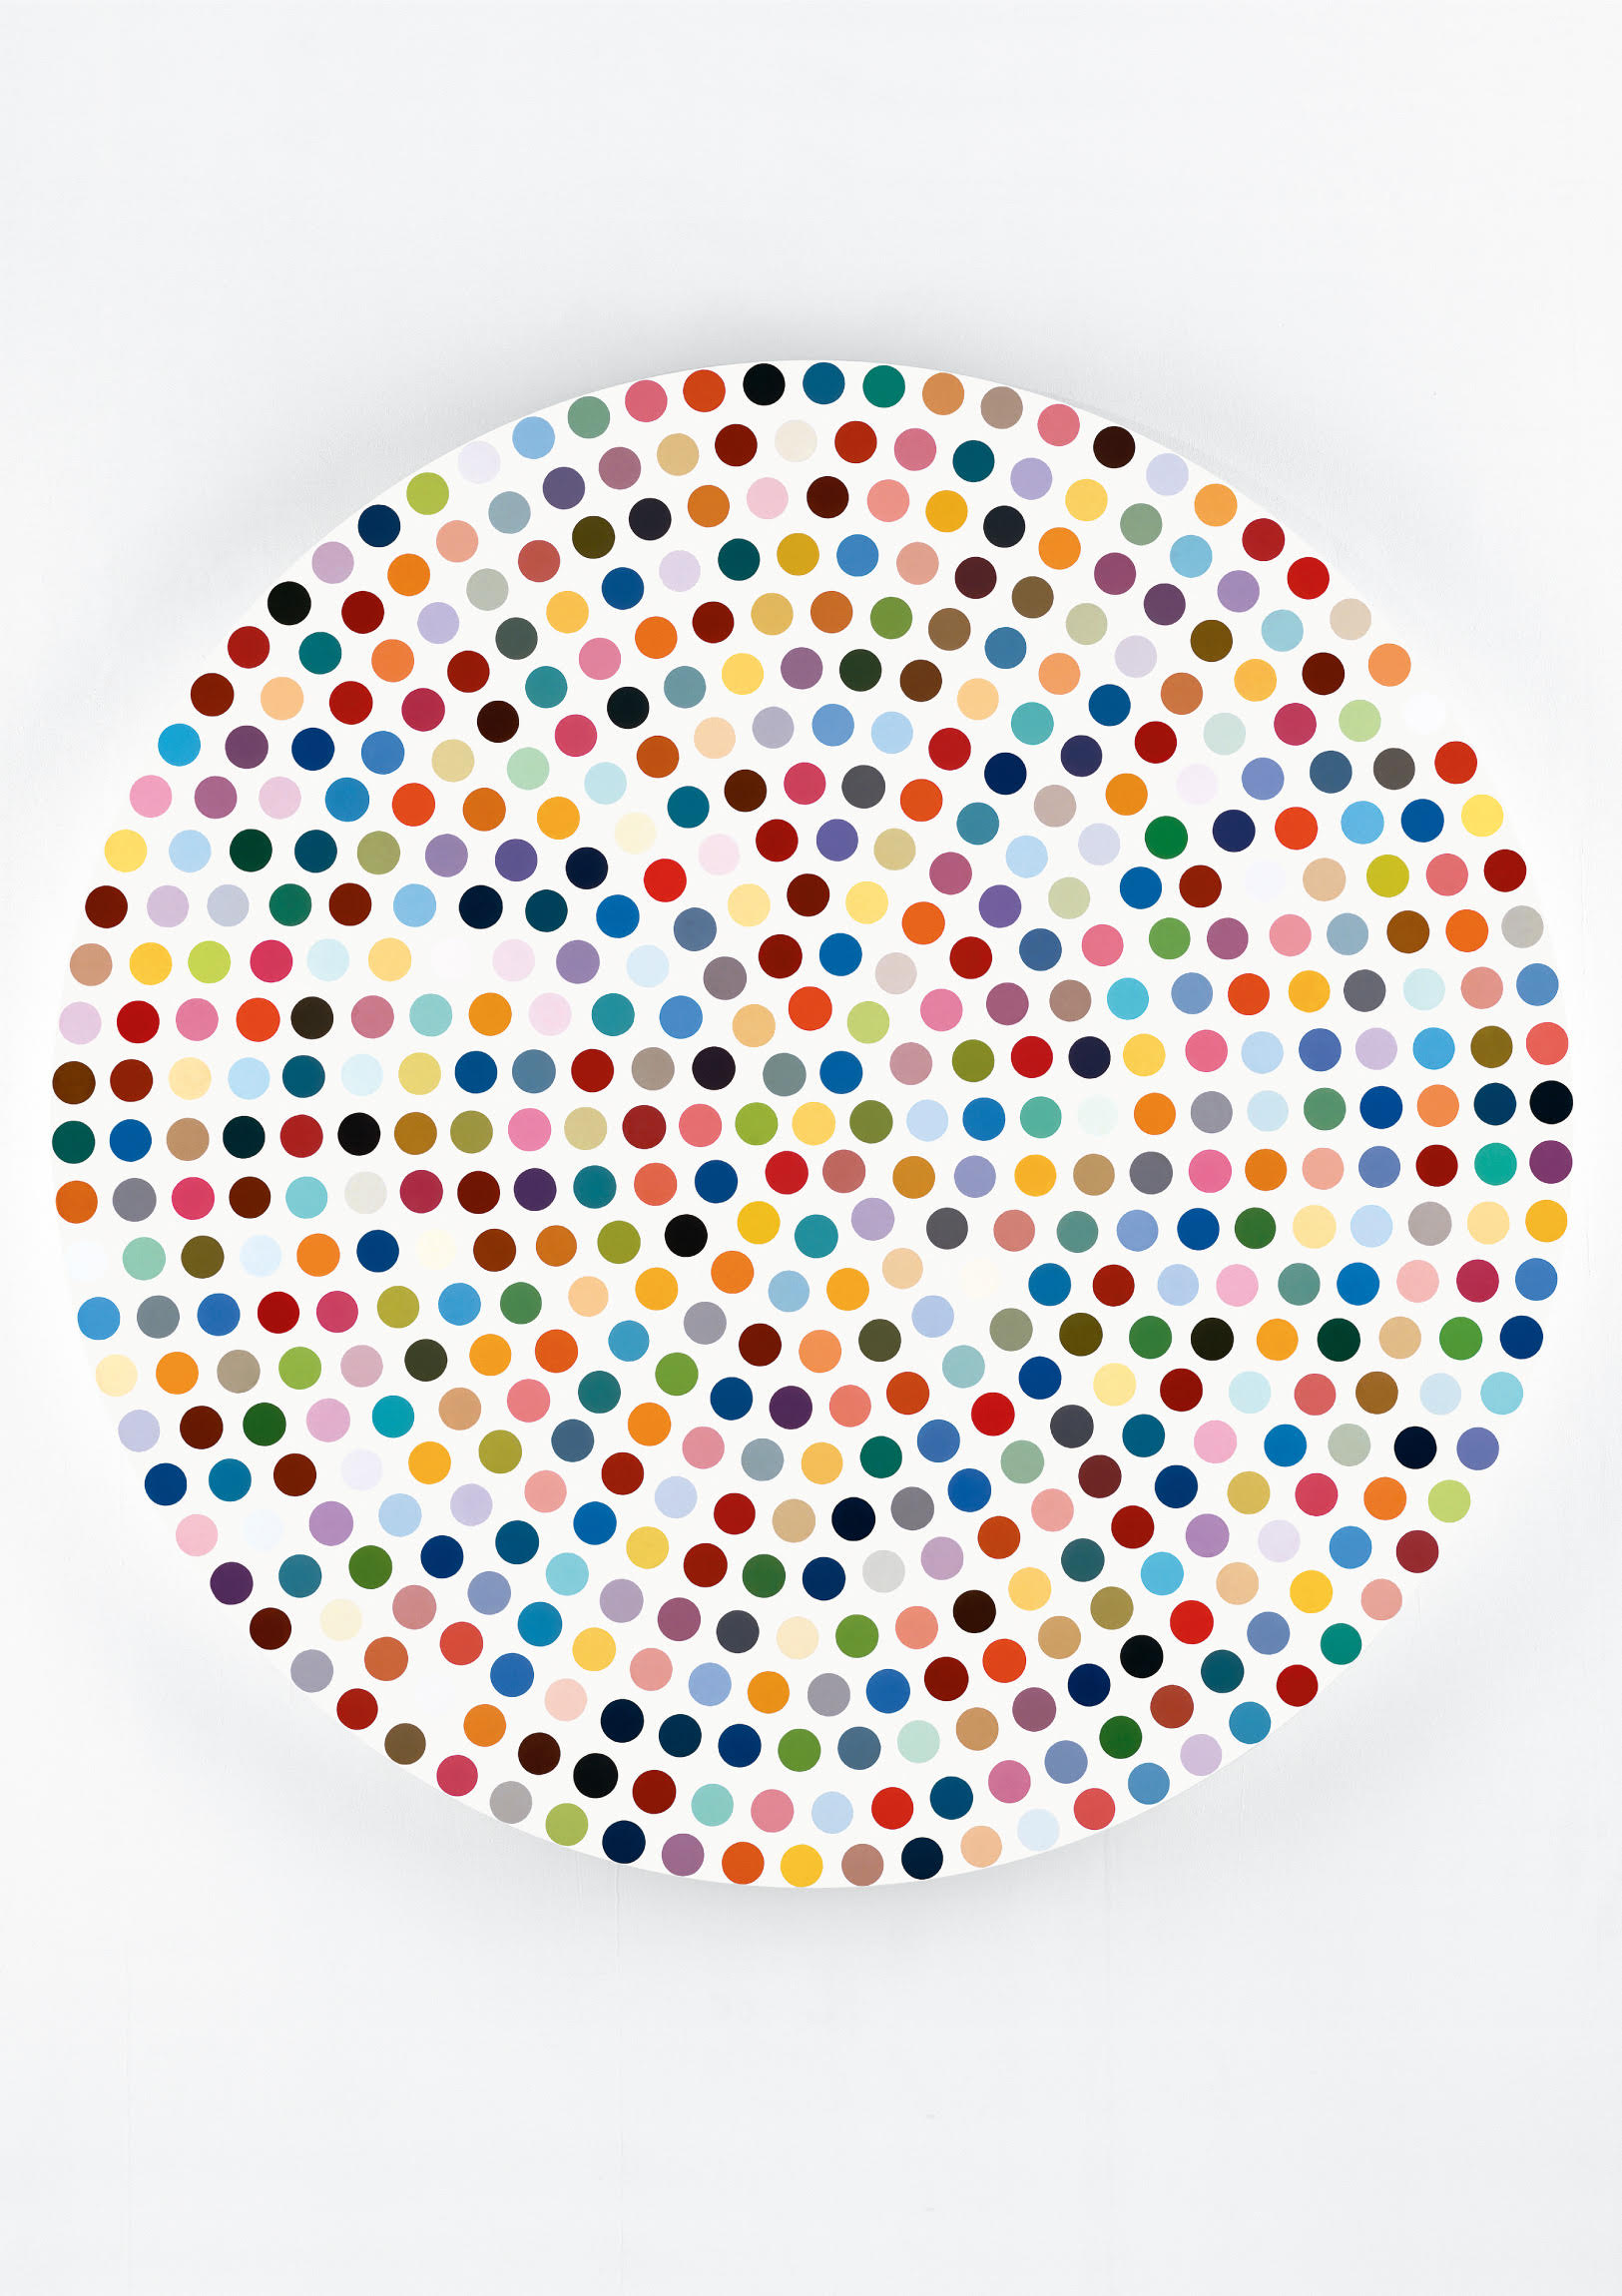 DAMIEN HIRST《ZINC SULFIDE》2004, φ182.9 cm, household gloss on canvas:「HOMMAGE」Sansiao Gallery